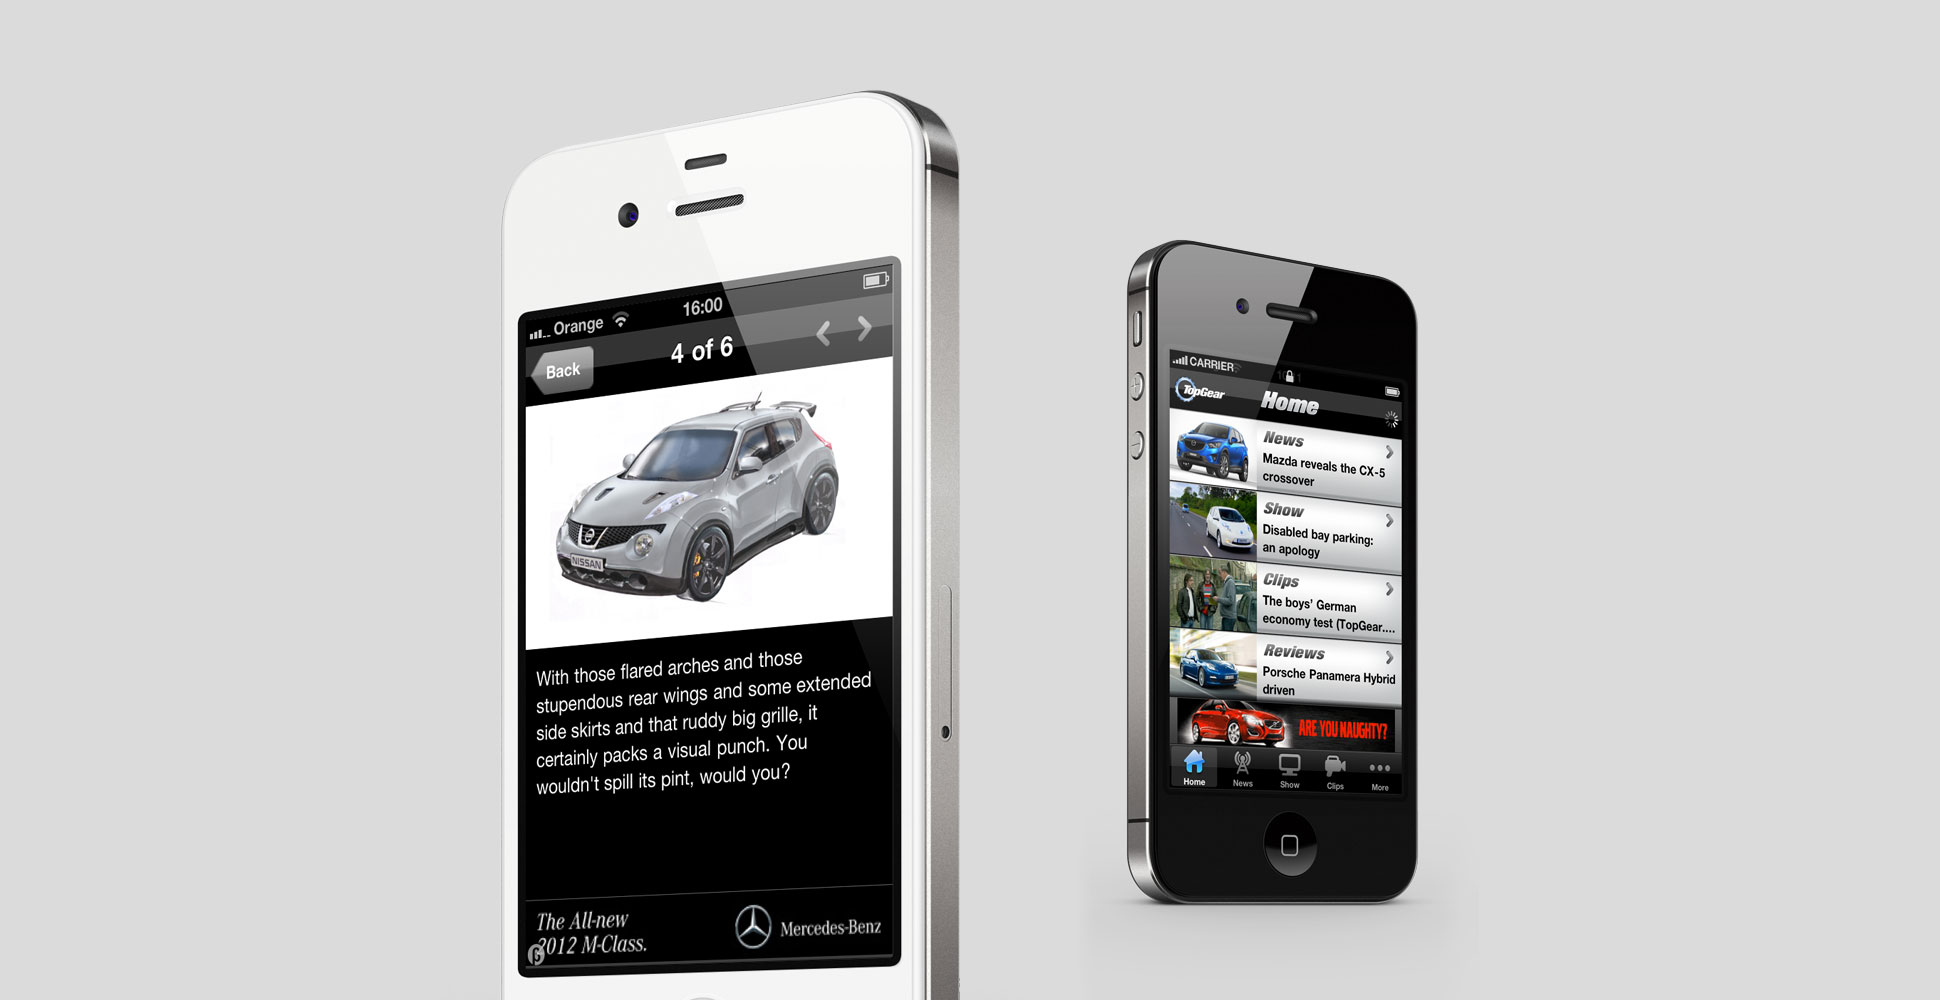 Top Gear Mobile App Images